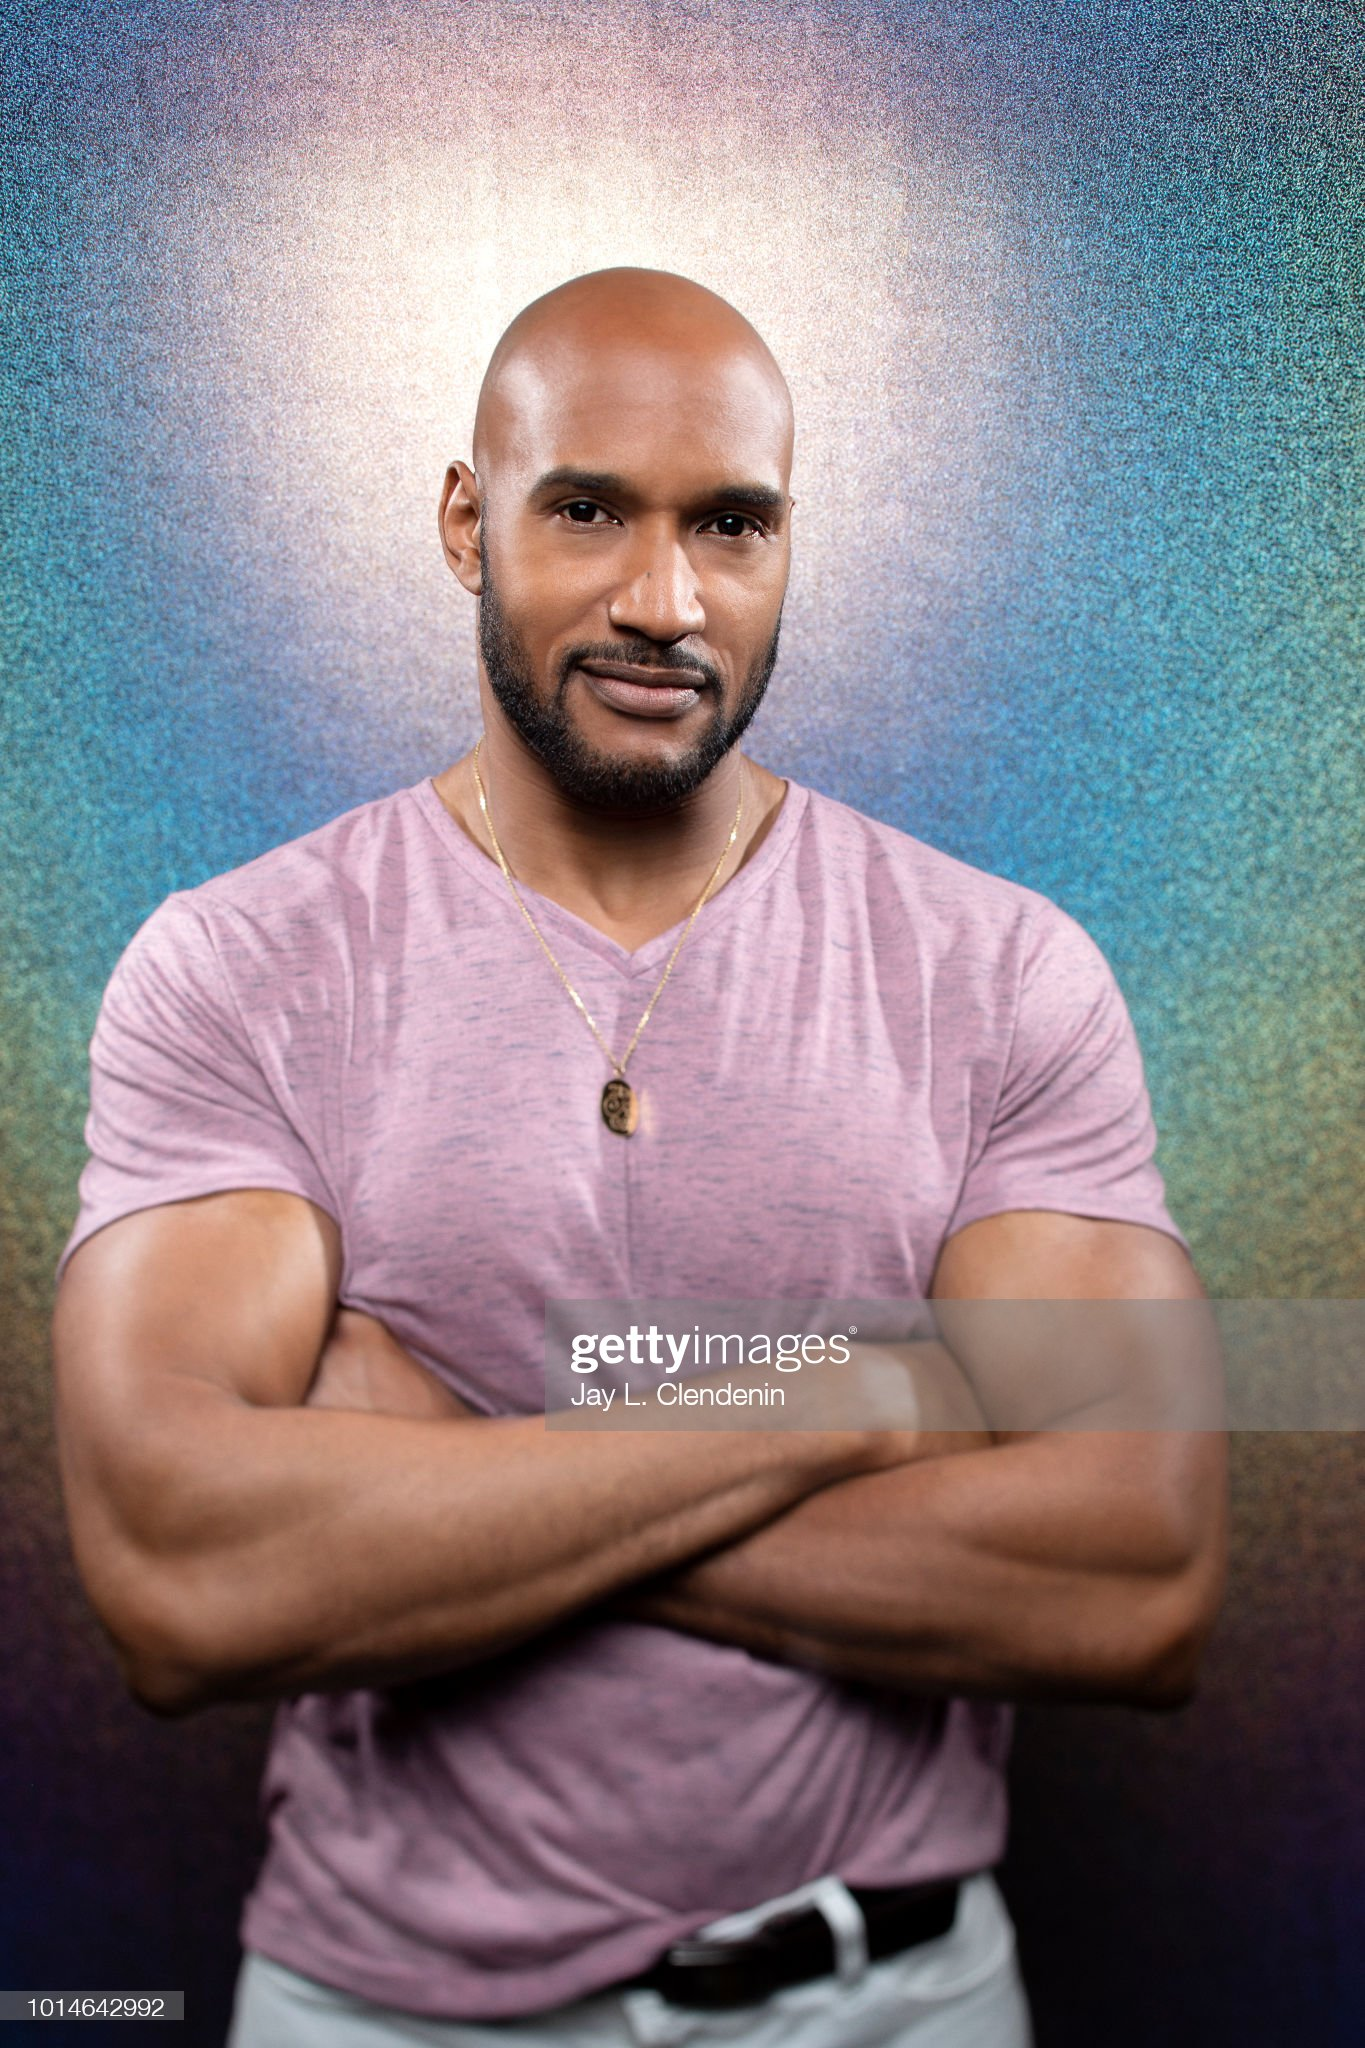 HOMBRES MARAVILLOSOS (DE ESOS DE AMOR PLATONICO) - Página 11 Actor-henry-simmons-from-agents-of-shield-is-photographed-for-los-picture-id1014642992?s=2048x2048